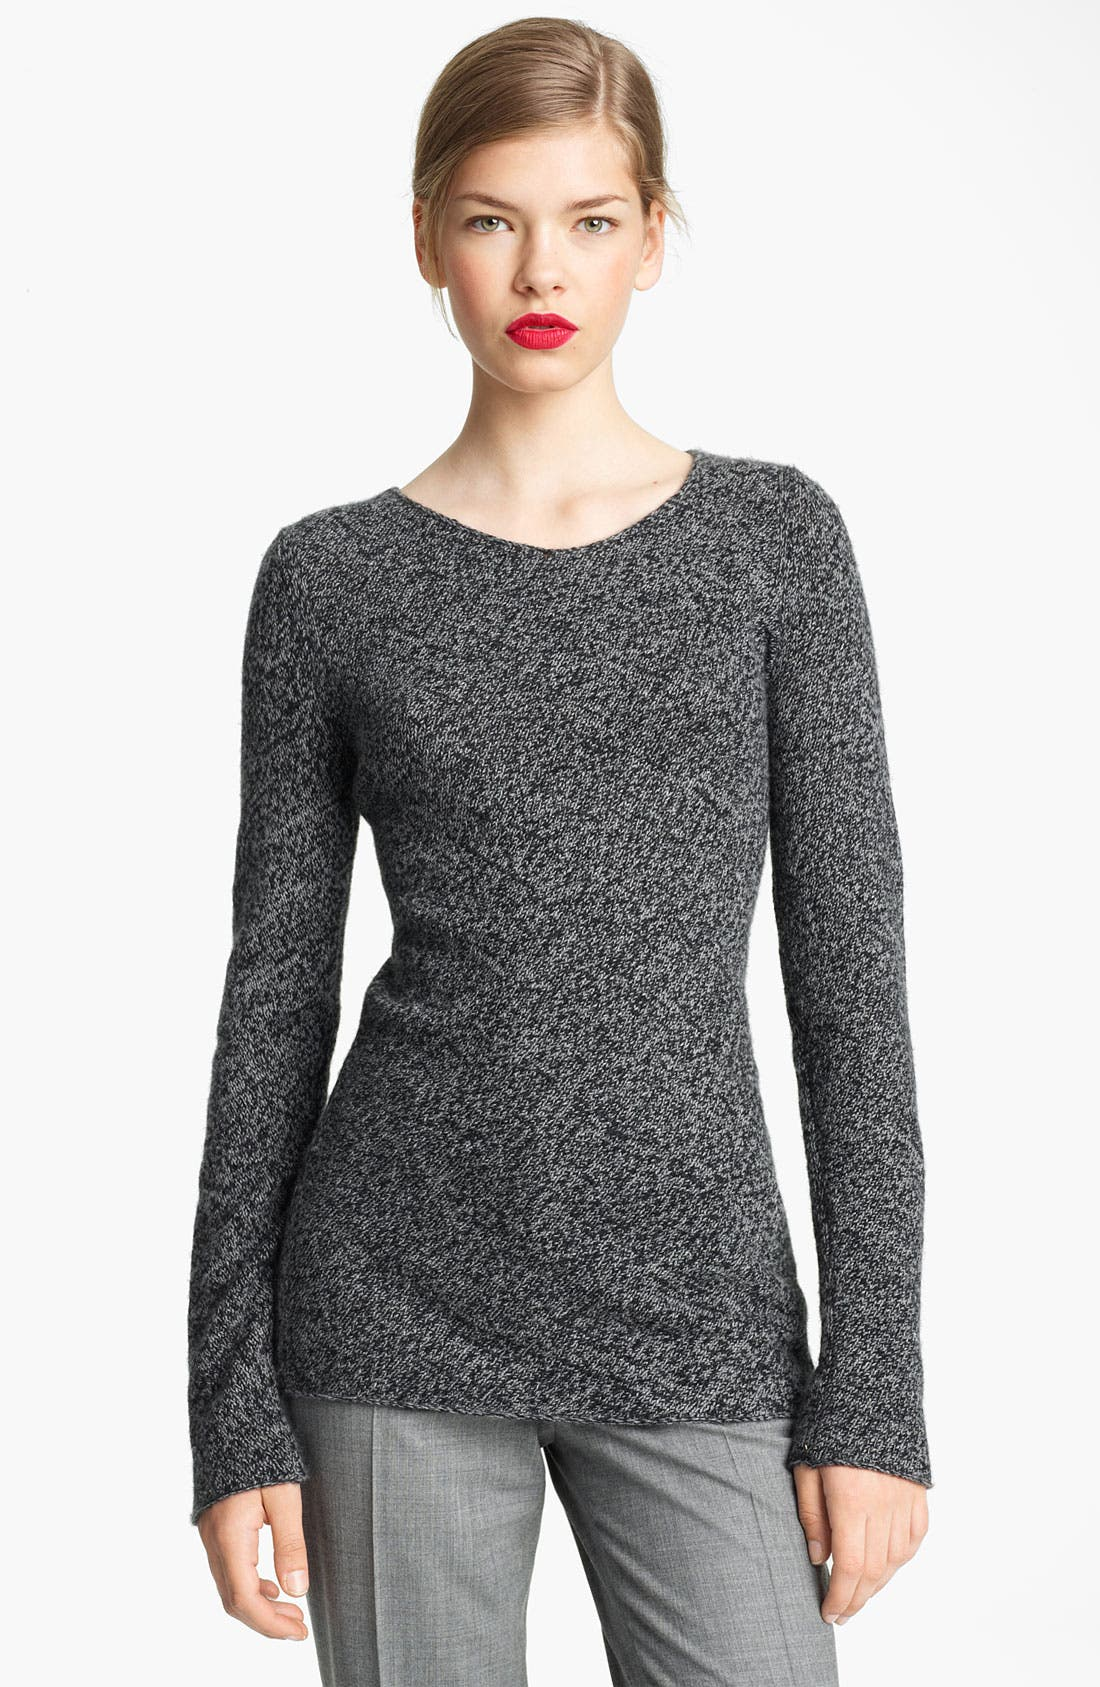 Alternate Image 1 Selected - Michael Kors Marled Cashmere Sweater